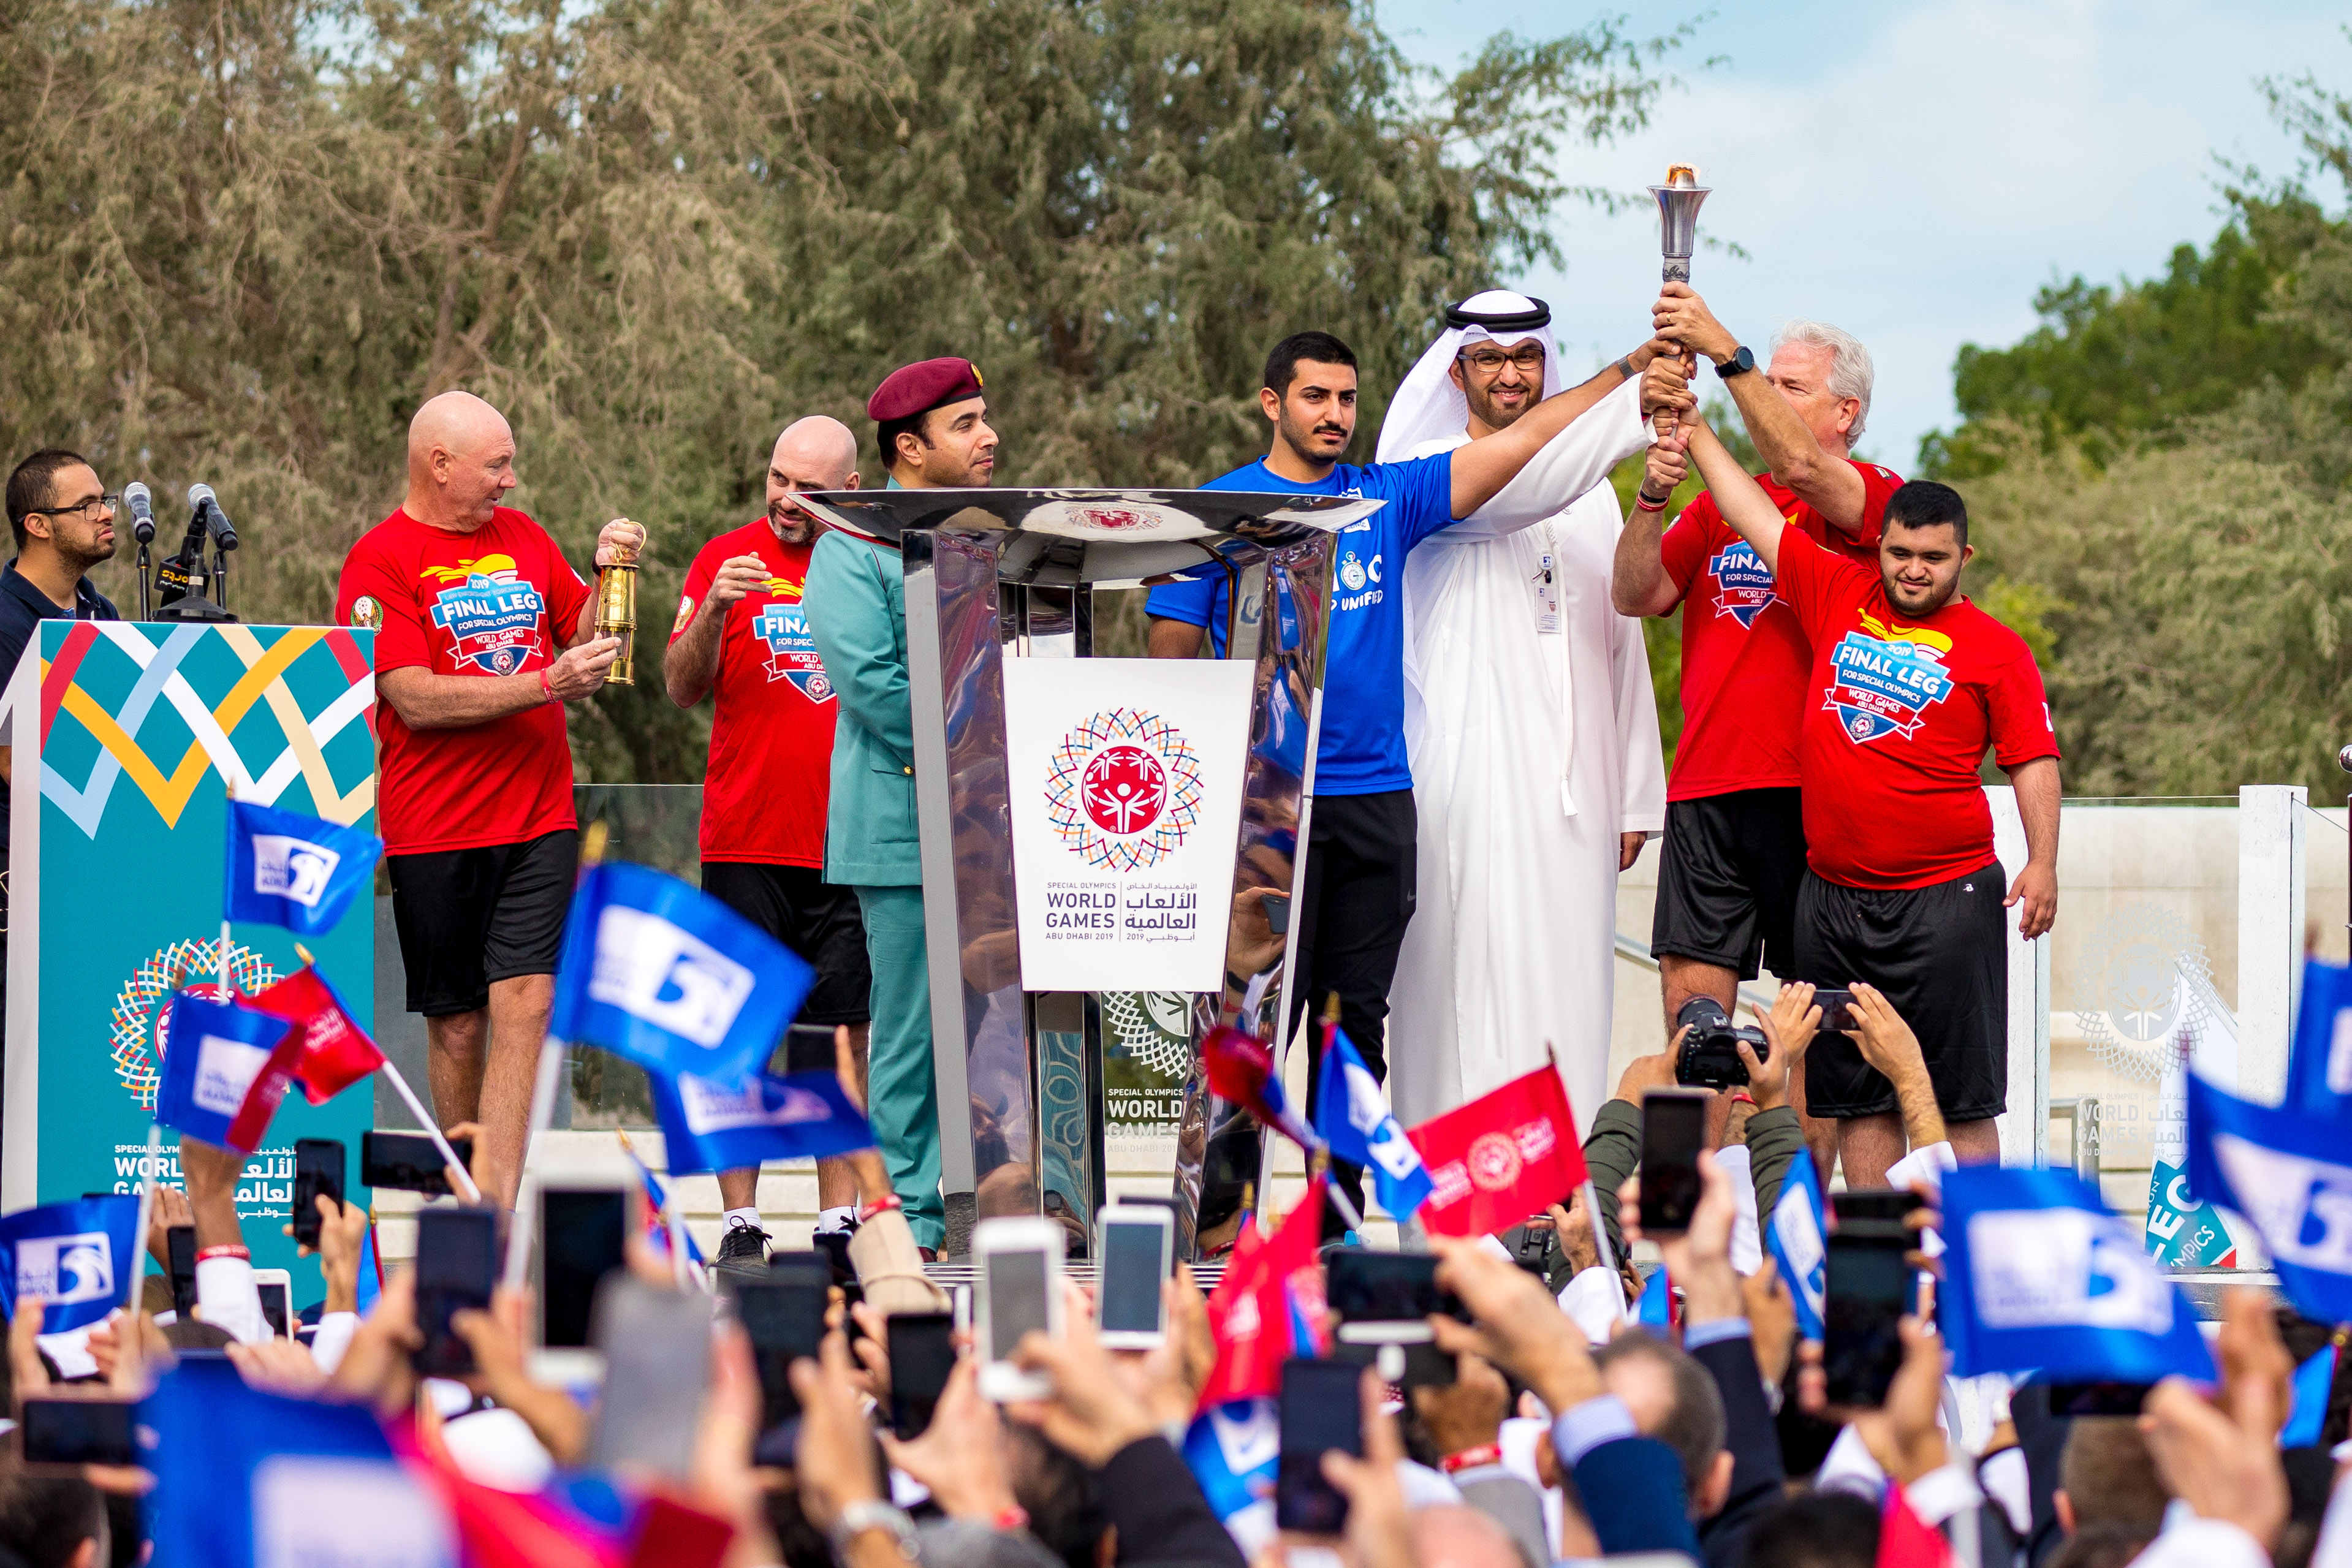 adnoc honours special olympics eternal flame of hope as it begins journey across uae 1